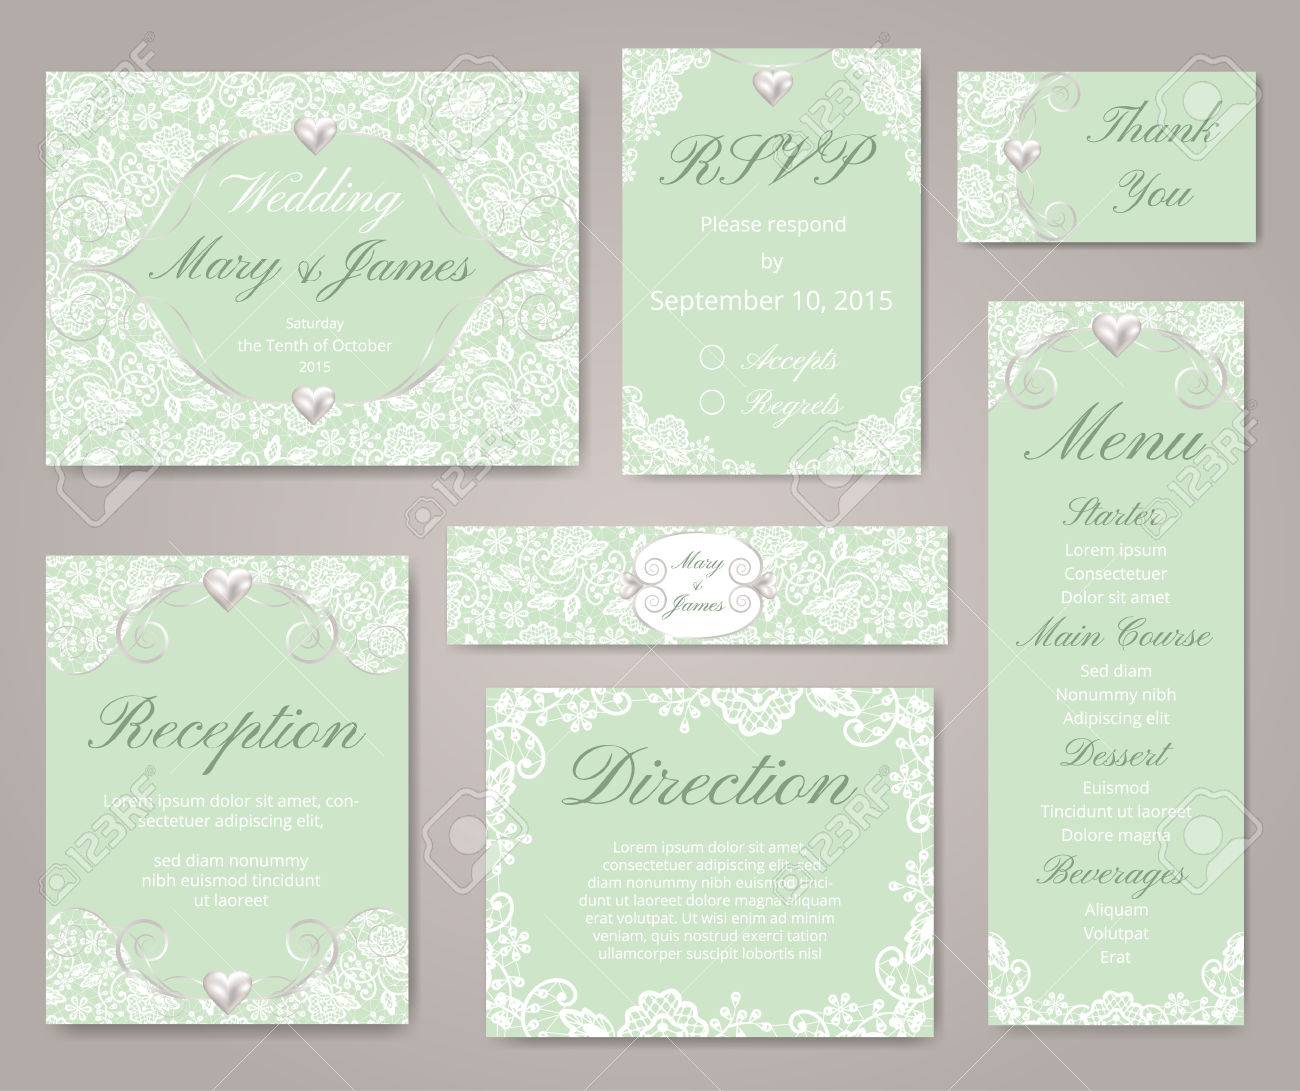 Wedding Invitation Cards With Lace Decorations And Pearl Royalty ...